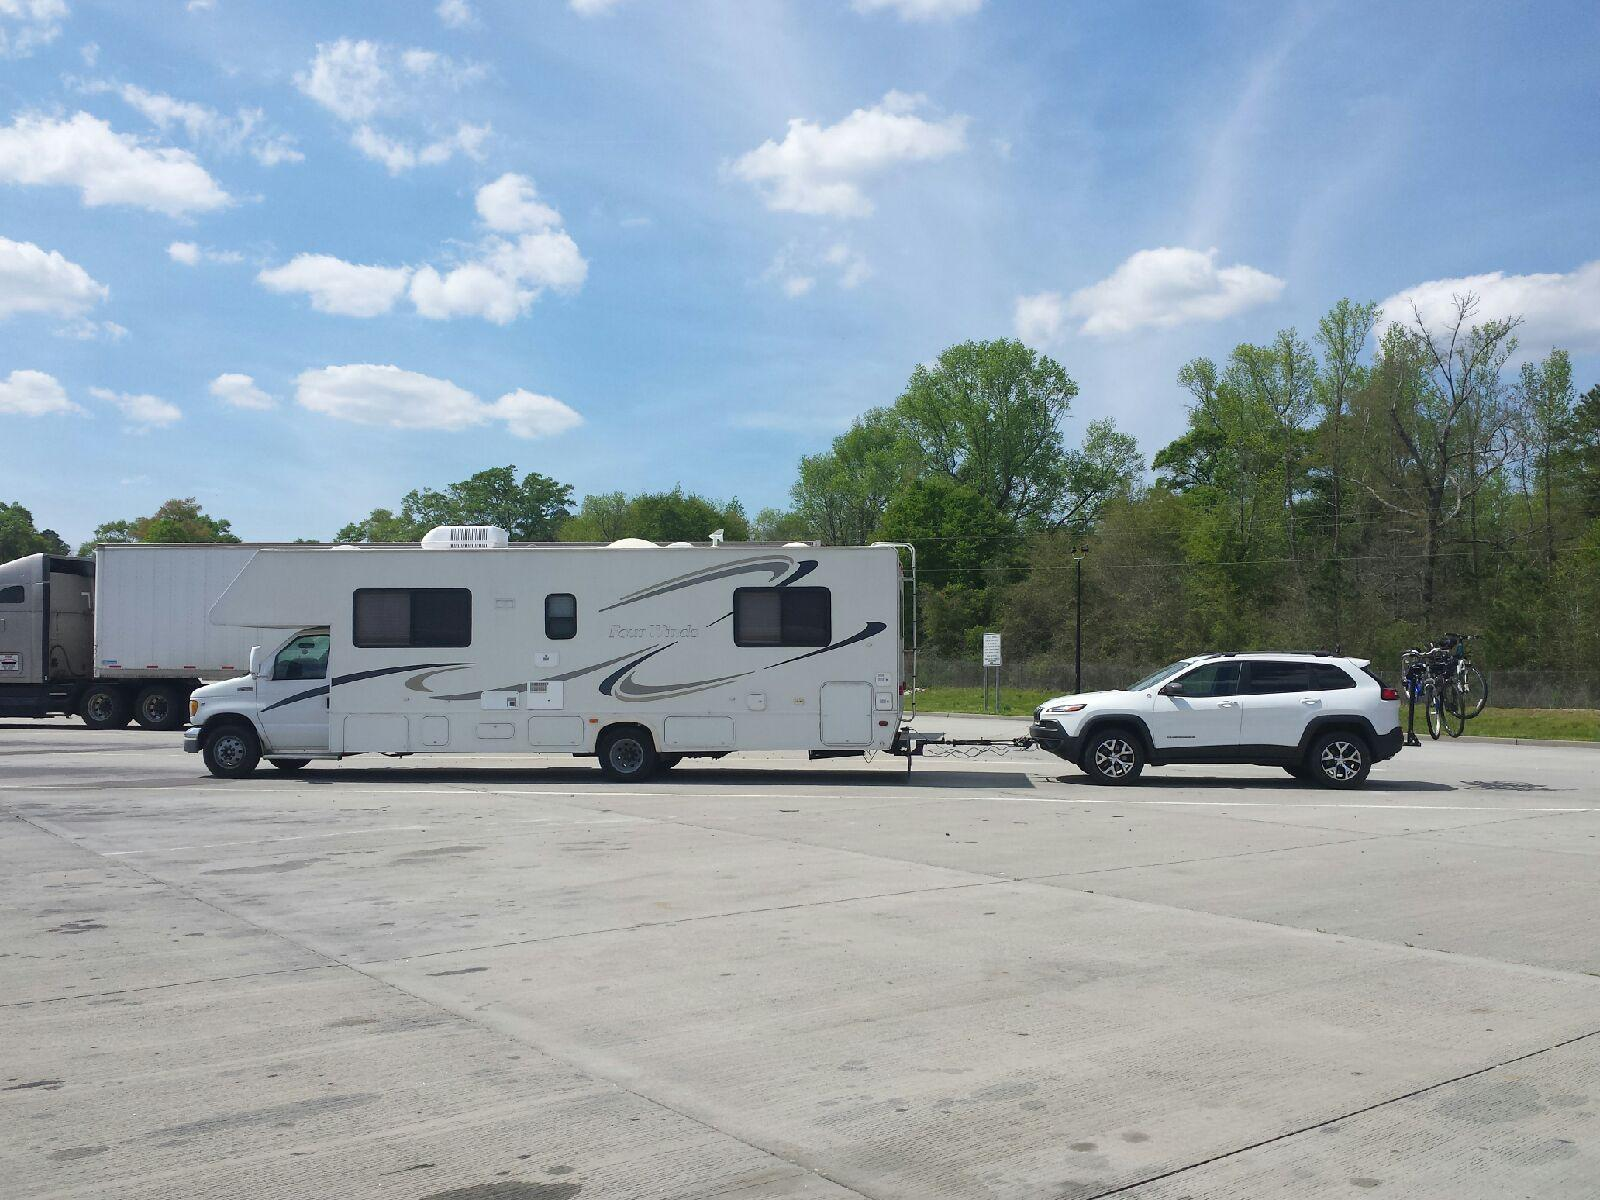 Click image for larger version  Name:Jeep and RV.jpg Views:78 Size:254.7 KB ID:123559